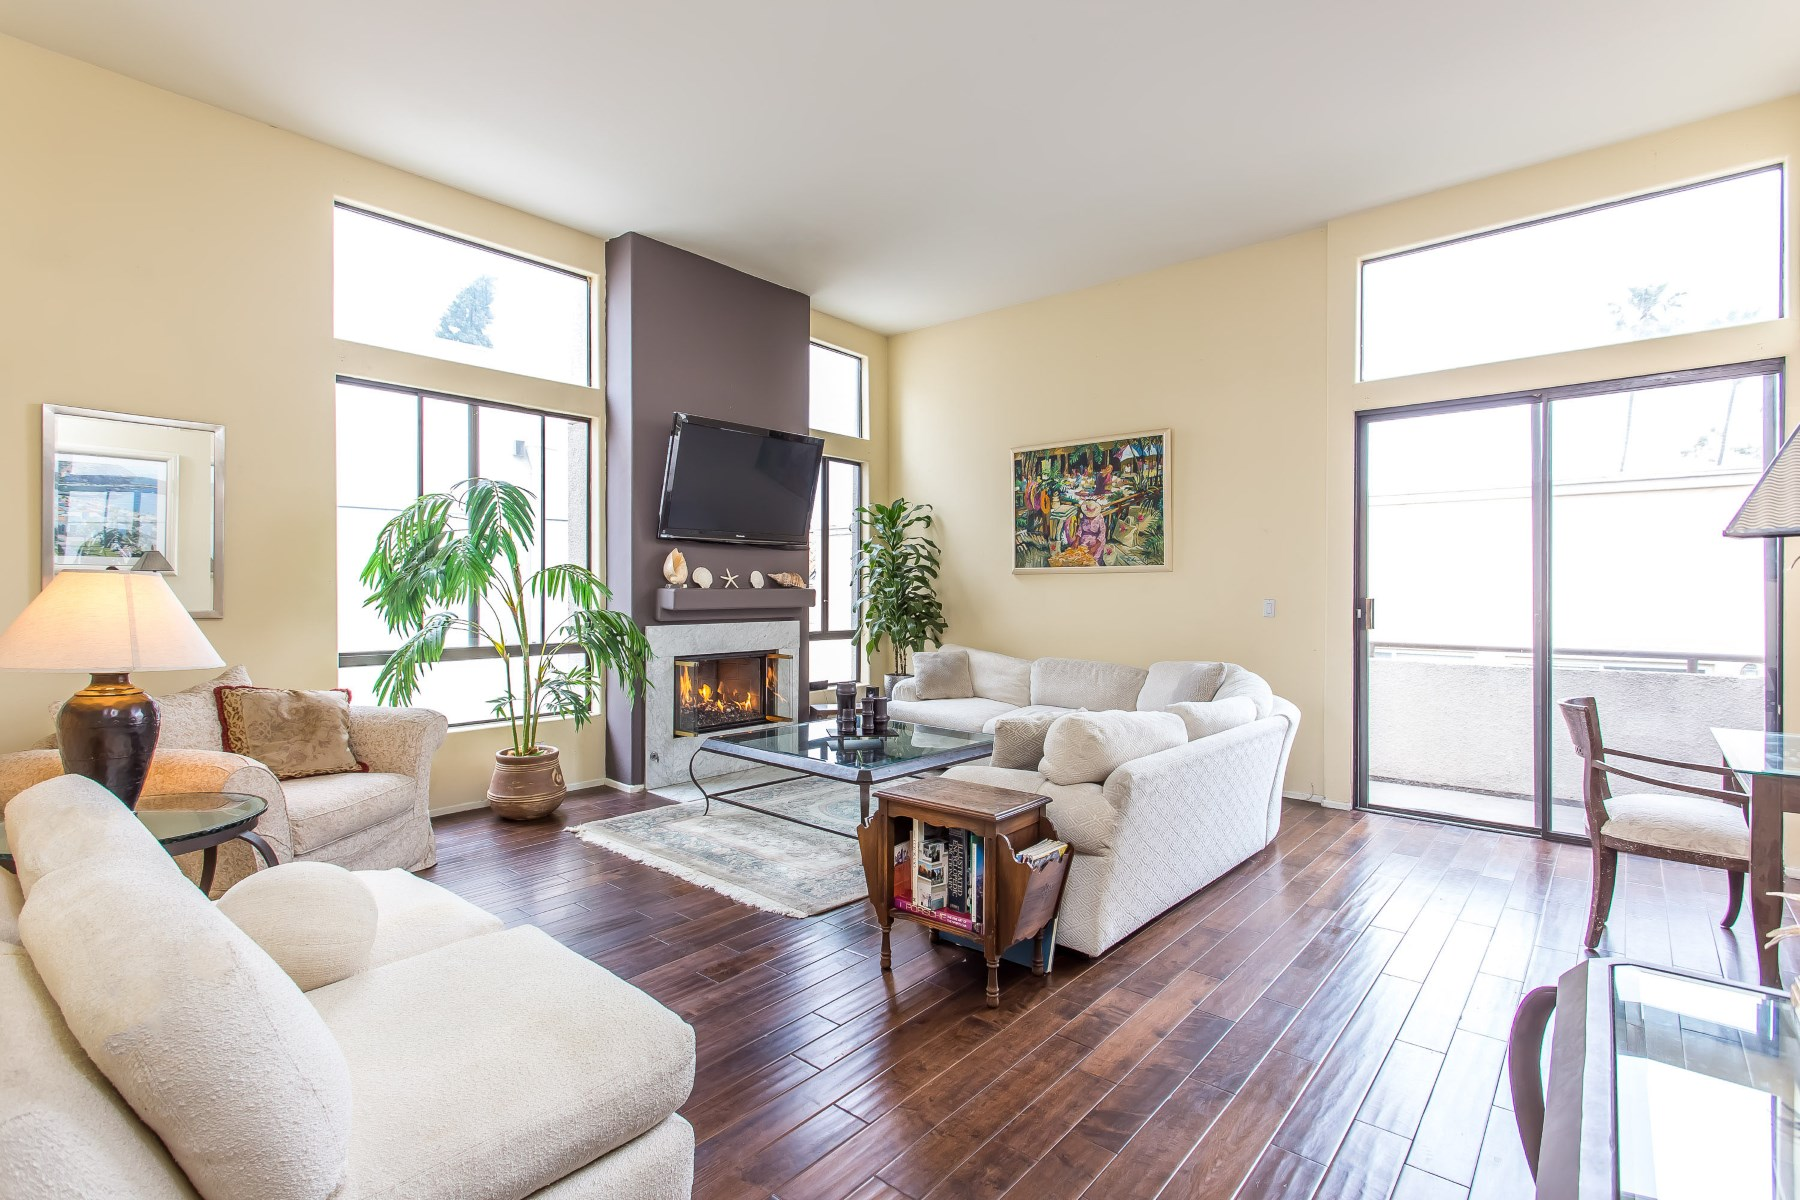 Condominium for Sale at Stunning Sun-Filled Penthouse Home 910 S Bedford Street #307 Los Angeles, California, 90035 United States